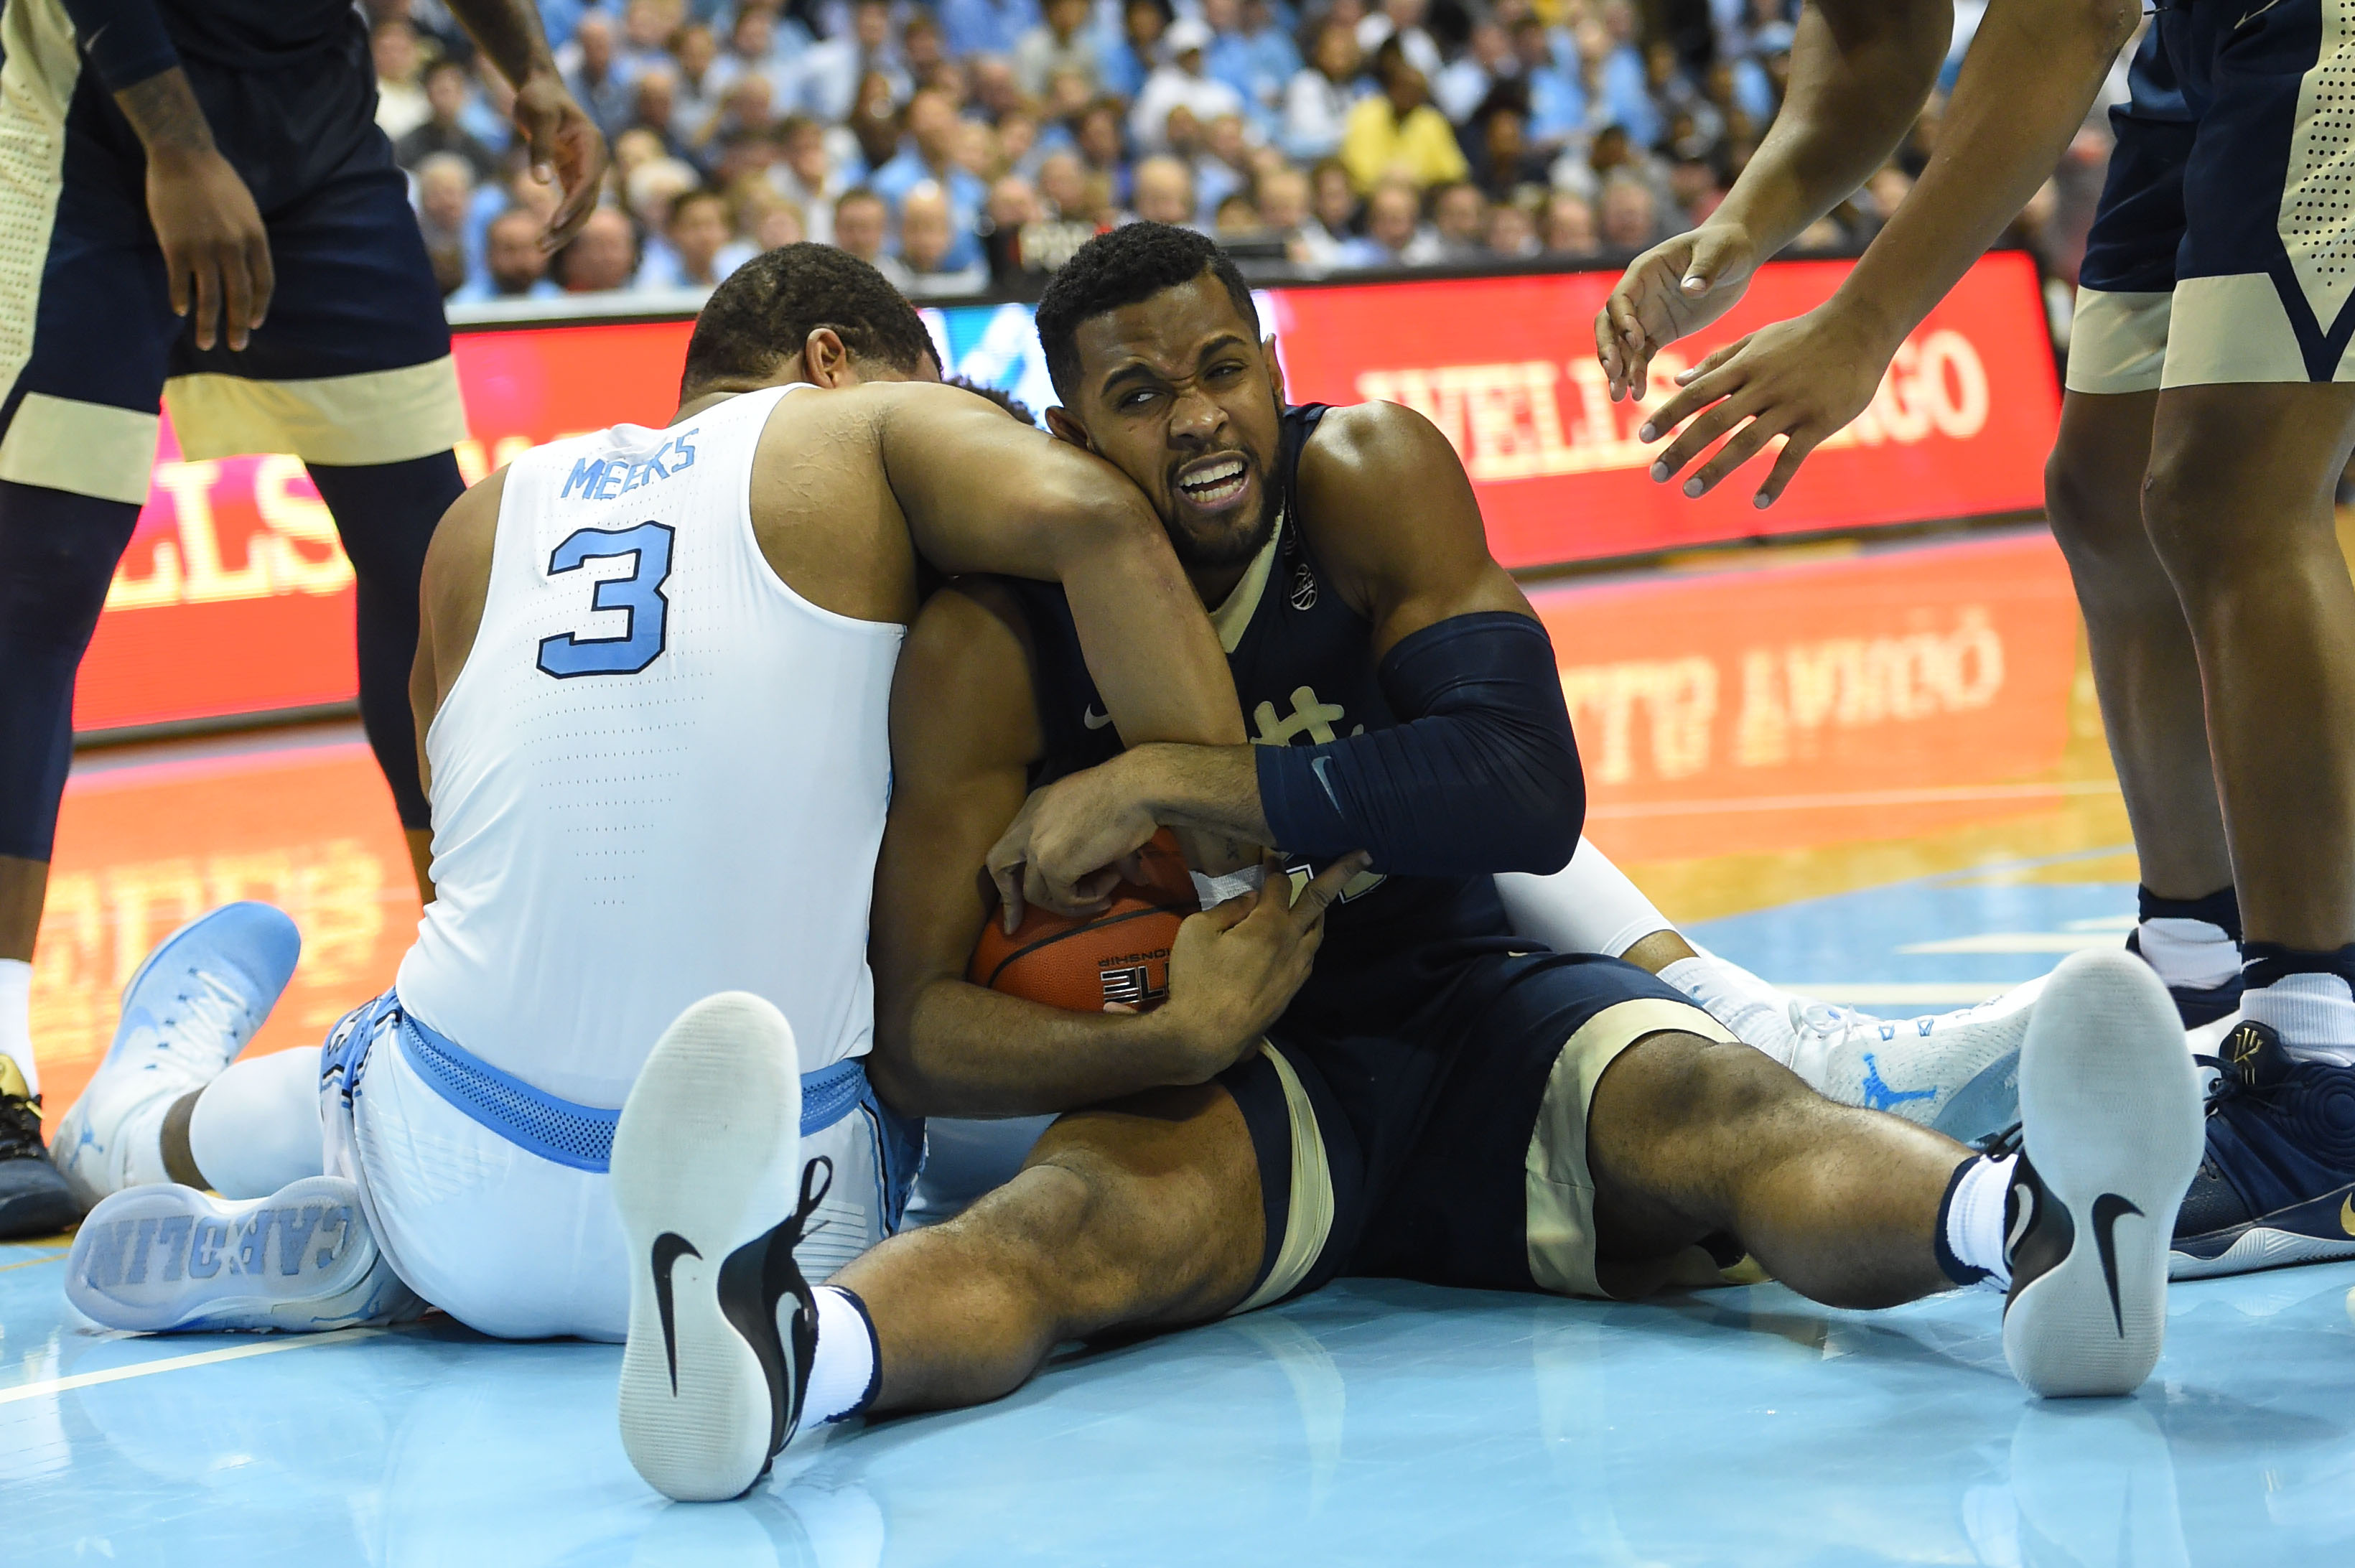 Irish-Tar Heels game gets moved to Sunday